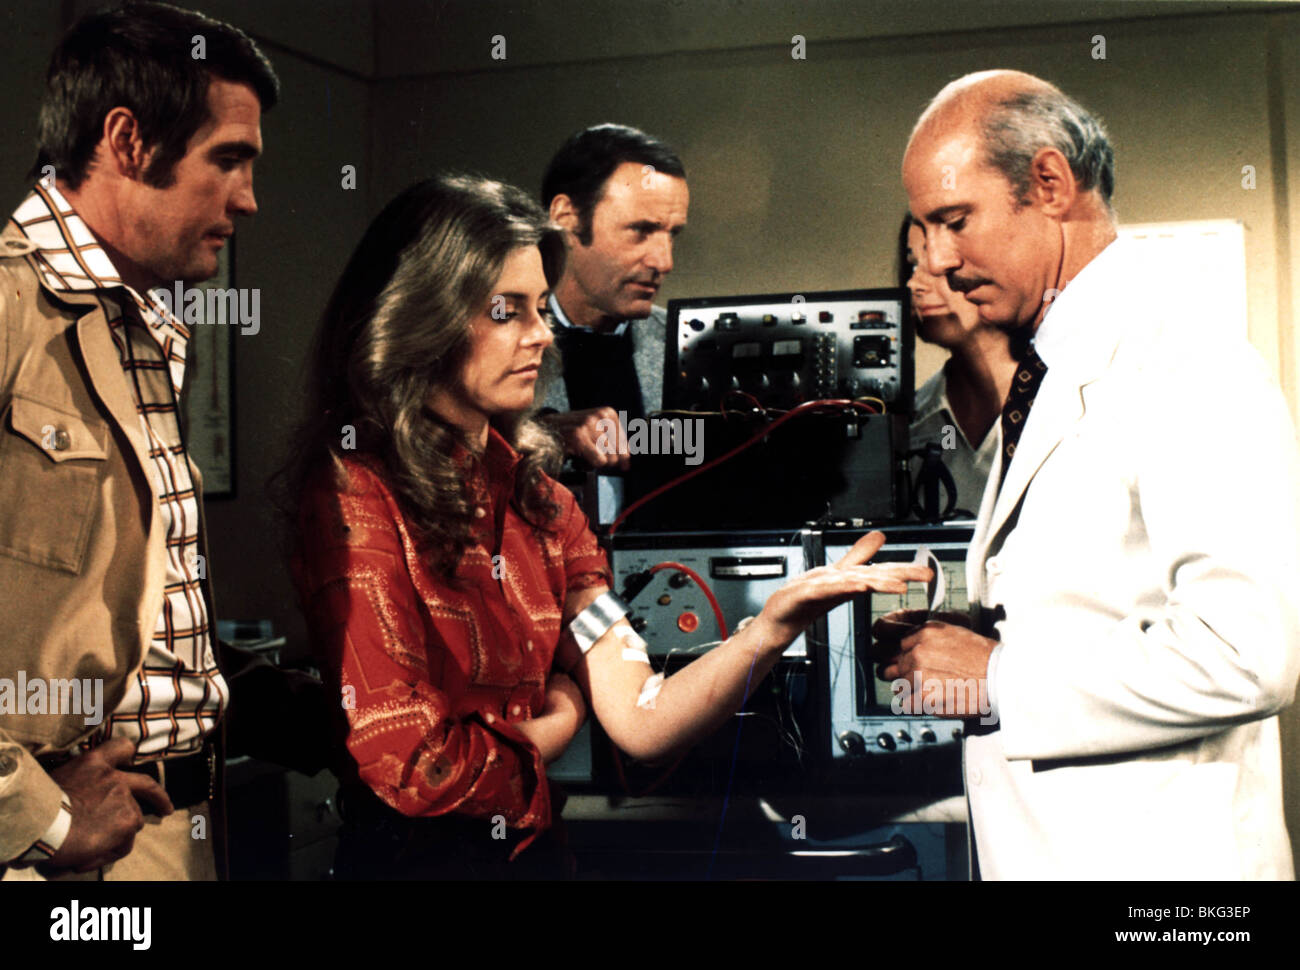 THE BIONIC WOMAN (TV) LEE MAJORS, LINDSAY WAGNER, RICHARD ANDERSON, MARTIN E BROOKS BIW 002CP - Stock Image